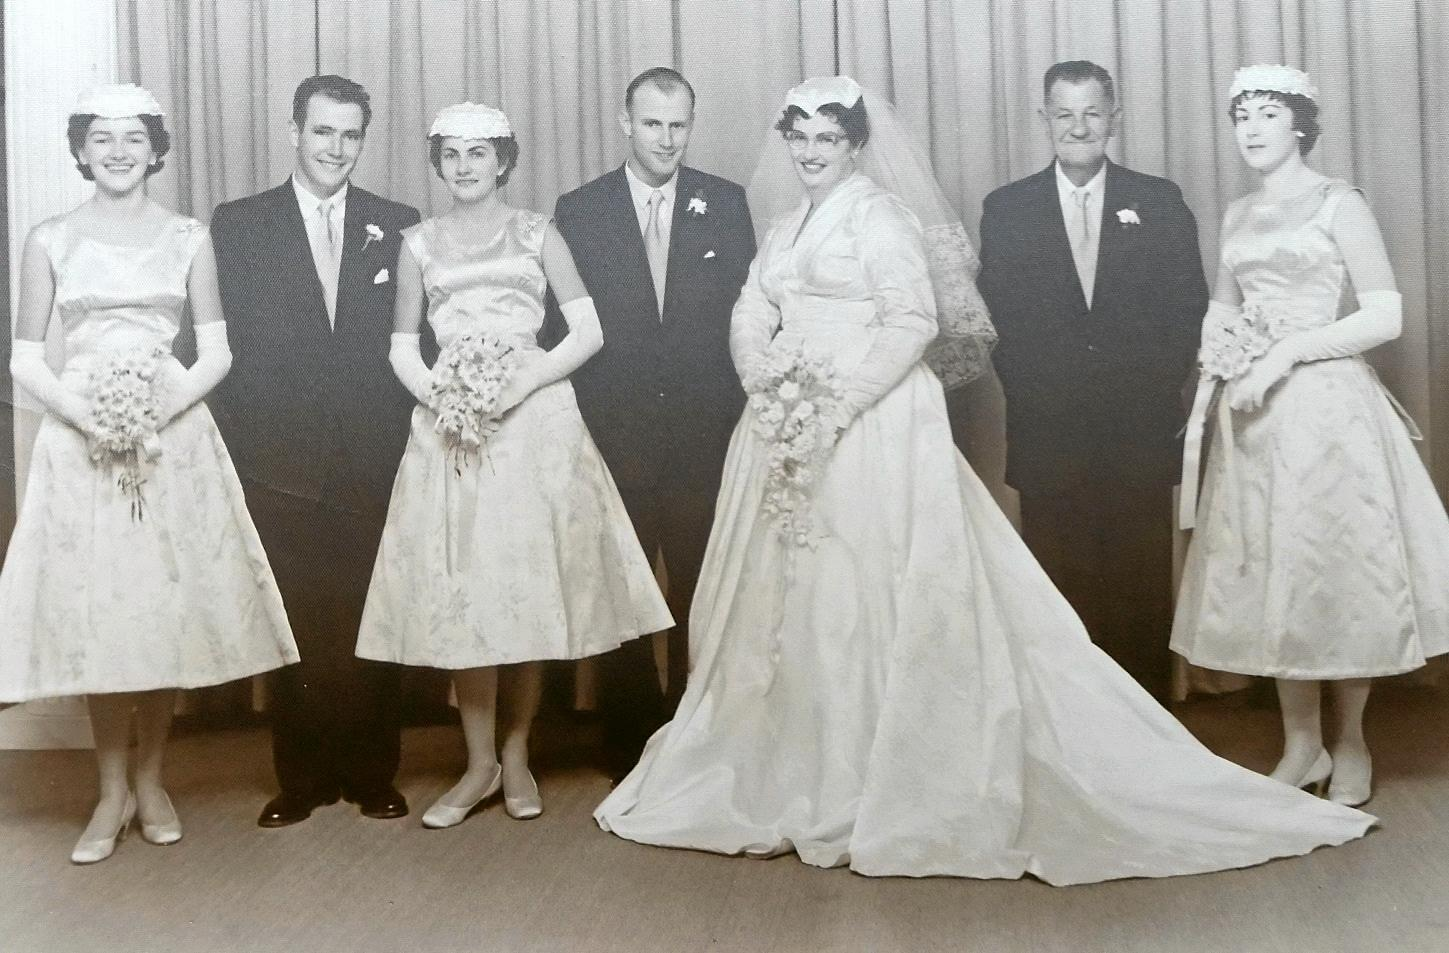 LONG LOVE: Lawrence and Margaret Percy celebrate their 60th wedding anniversary today.